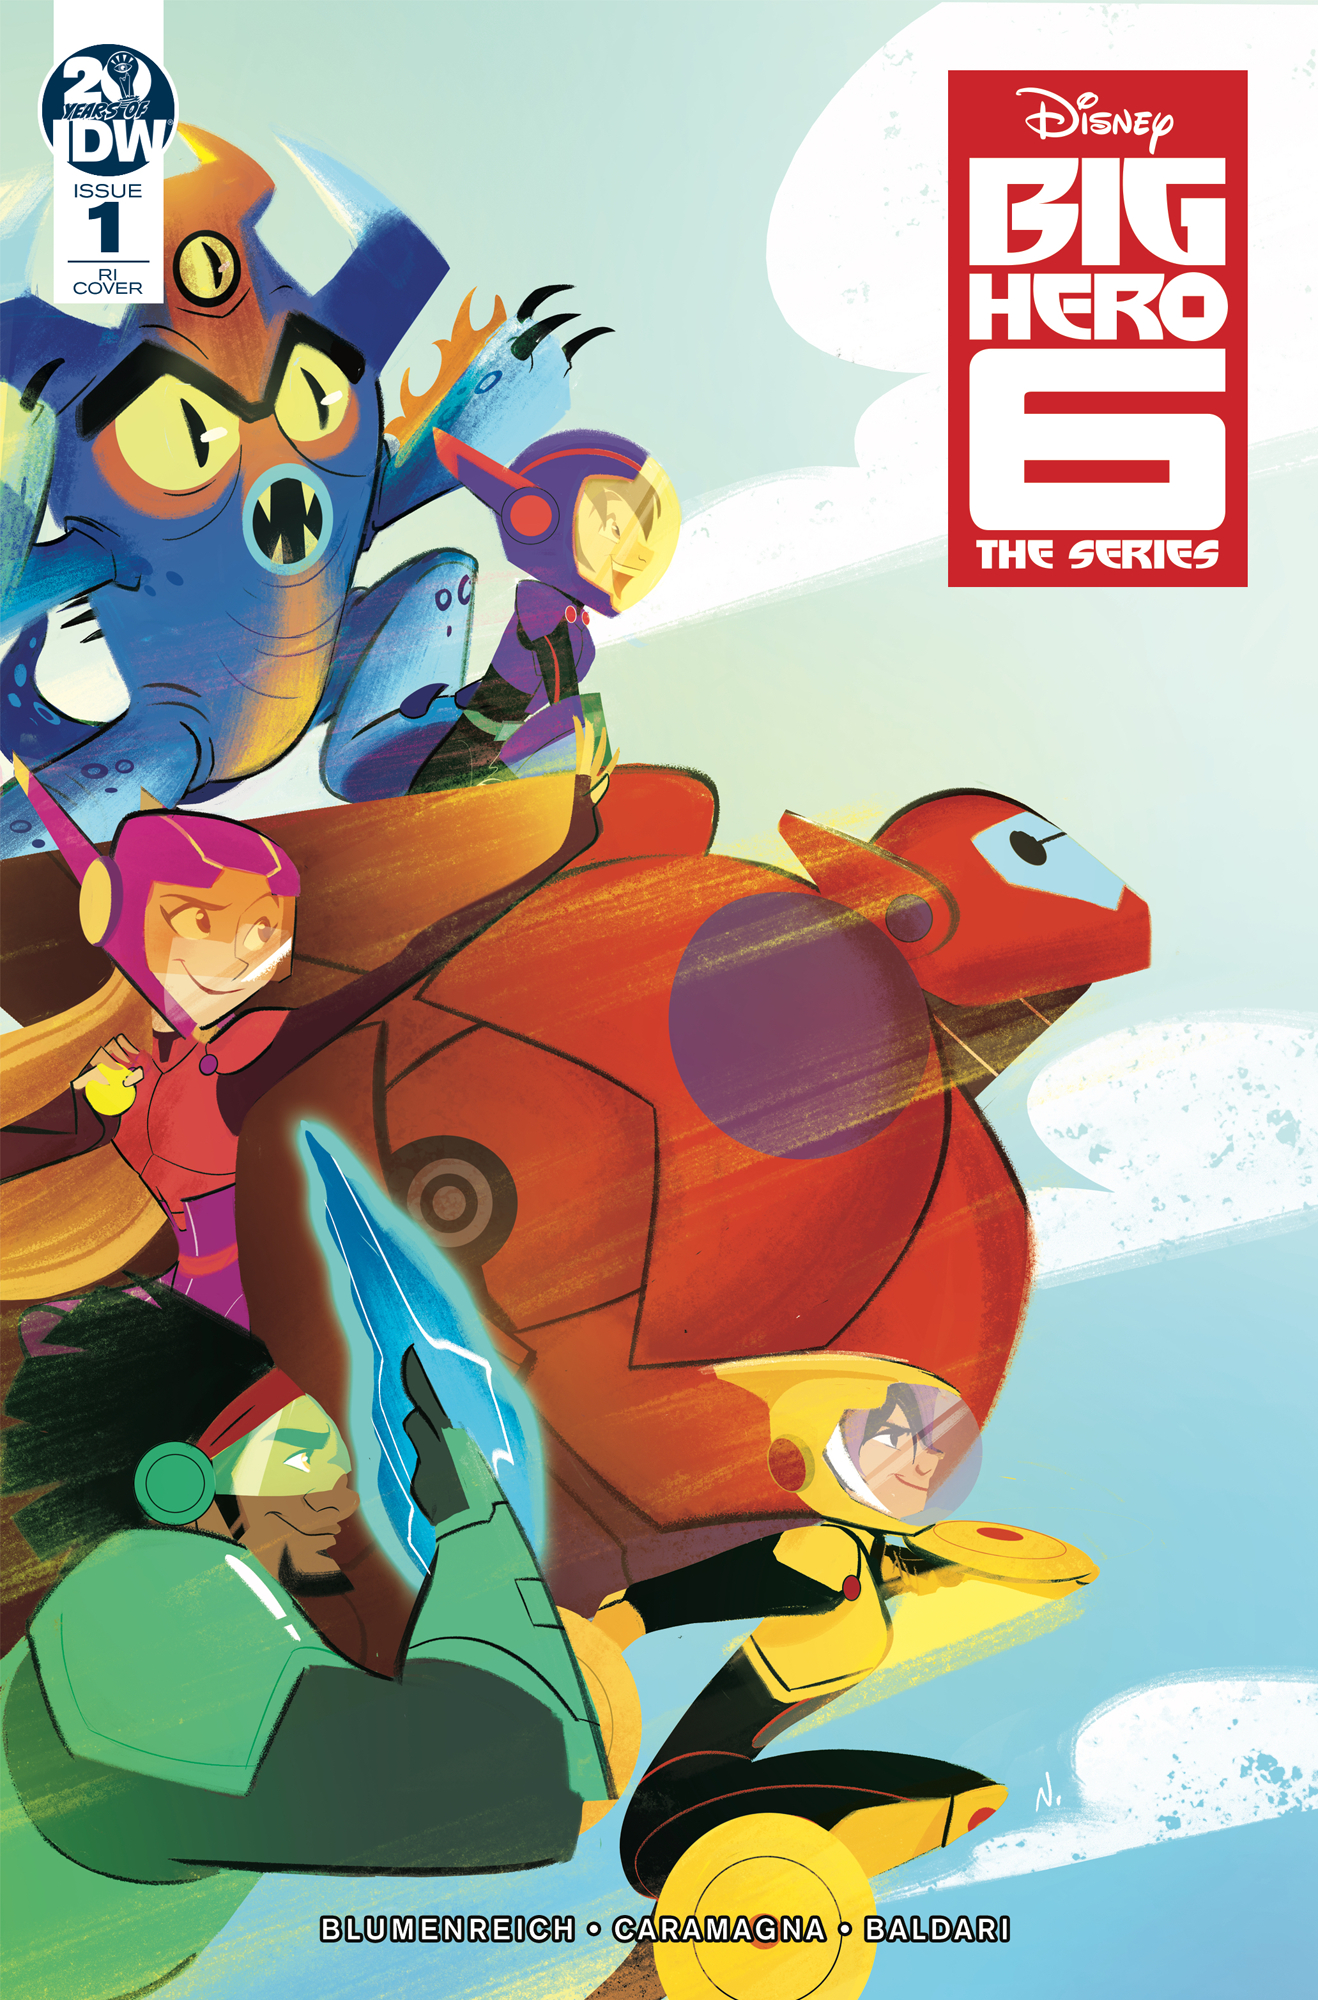 BIG HERO 6 THE SERIES #1 10 COPY INCV BALDARI (RES) (C